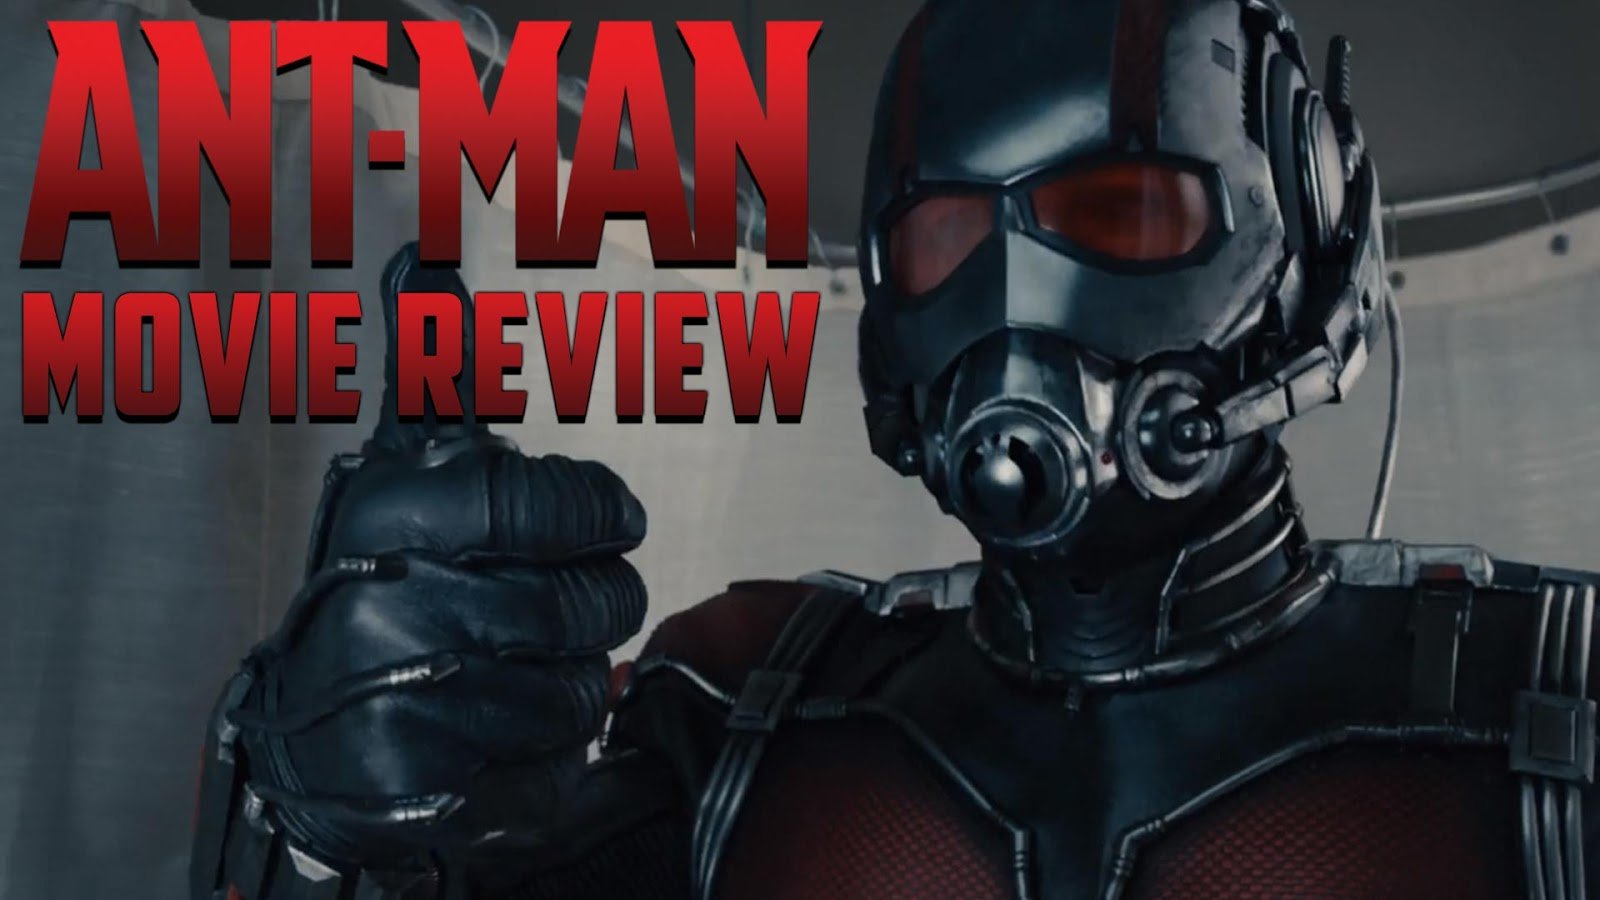 movie review Ant-Man podcast